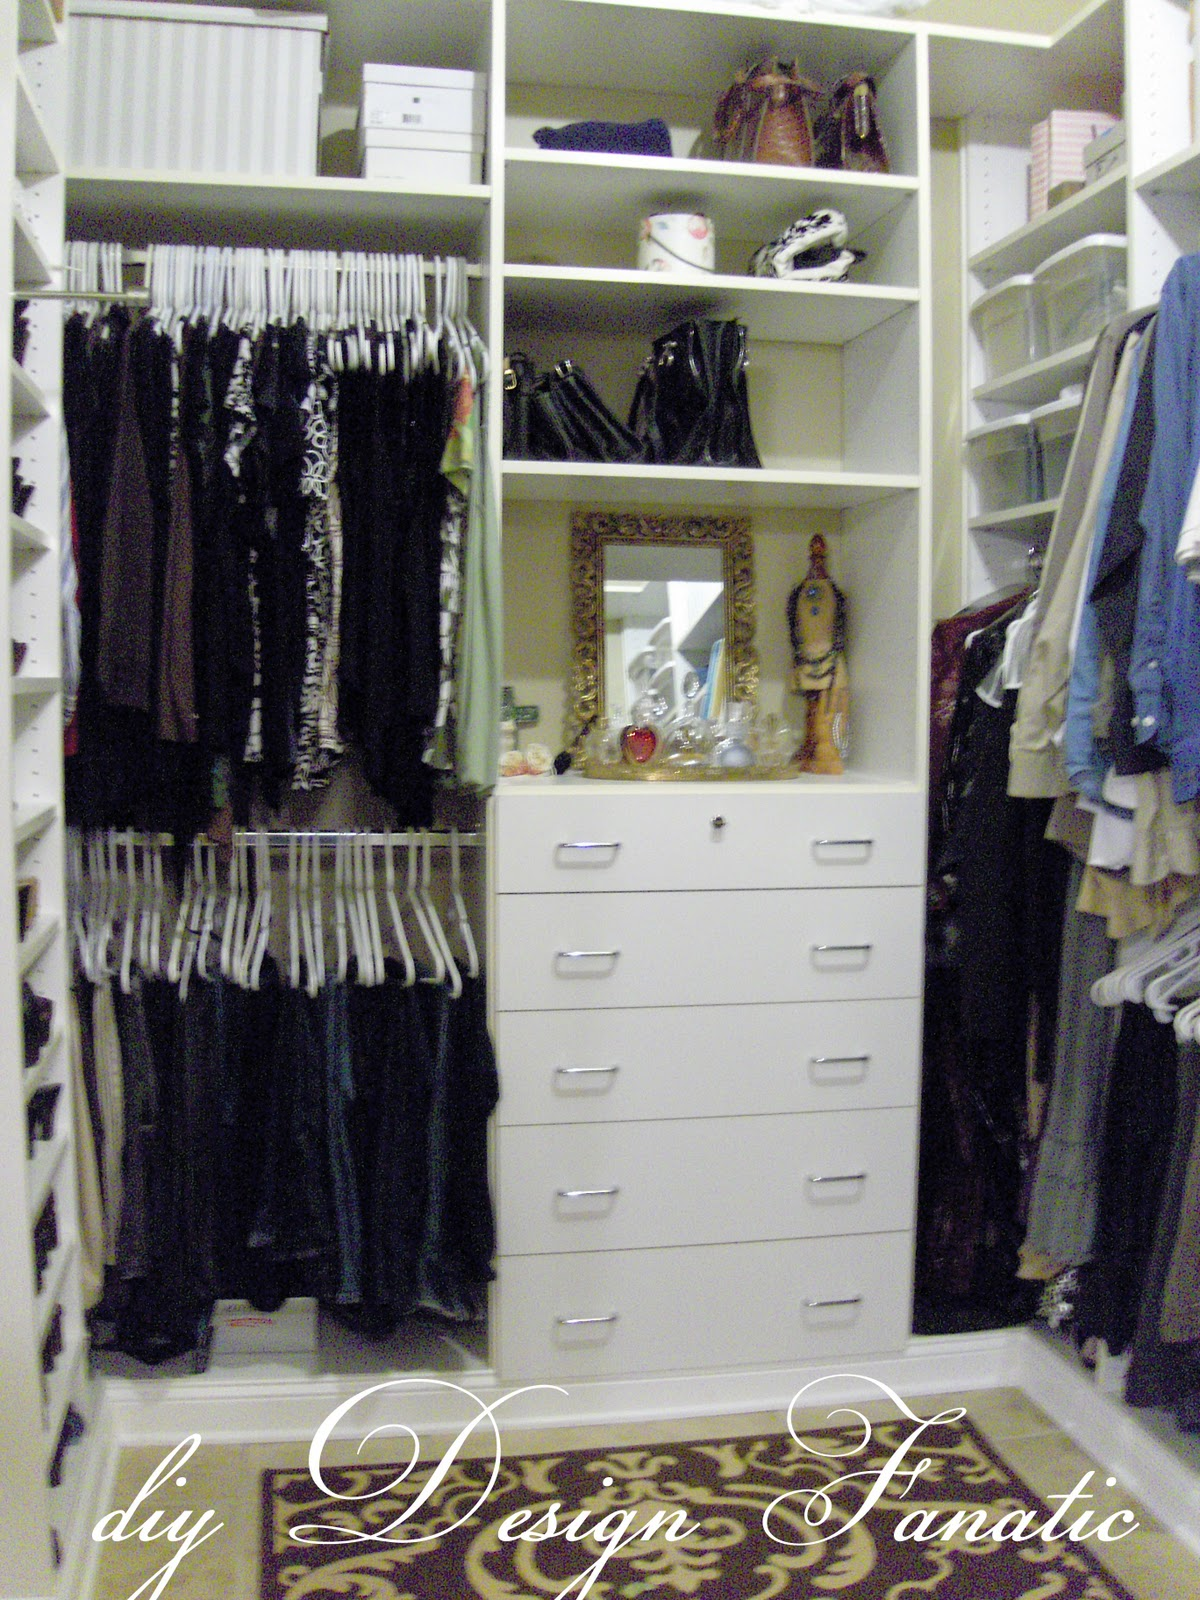 organized all moreganized a version organize to closet by from cluttered catch closets move system we